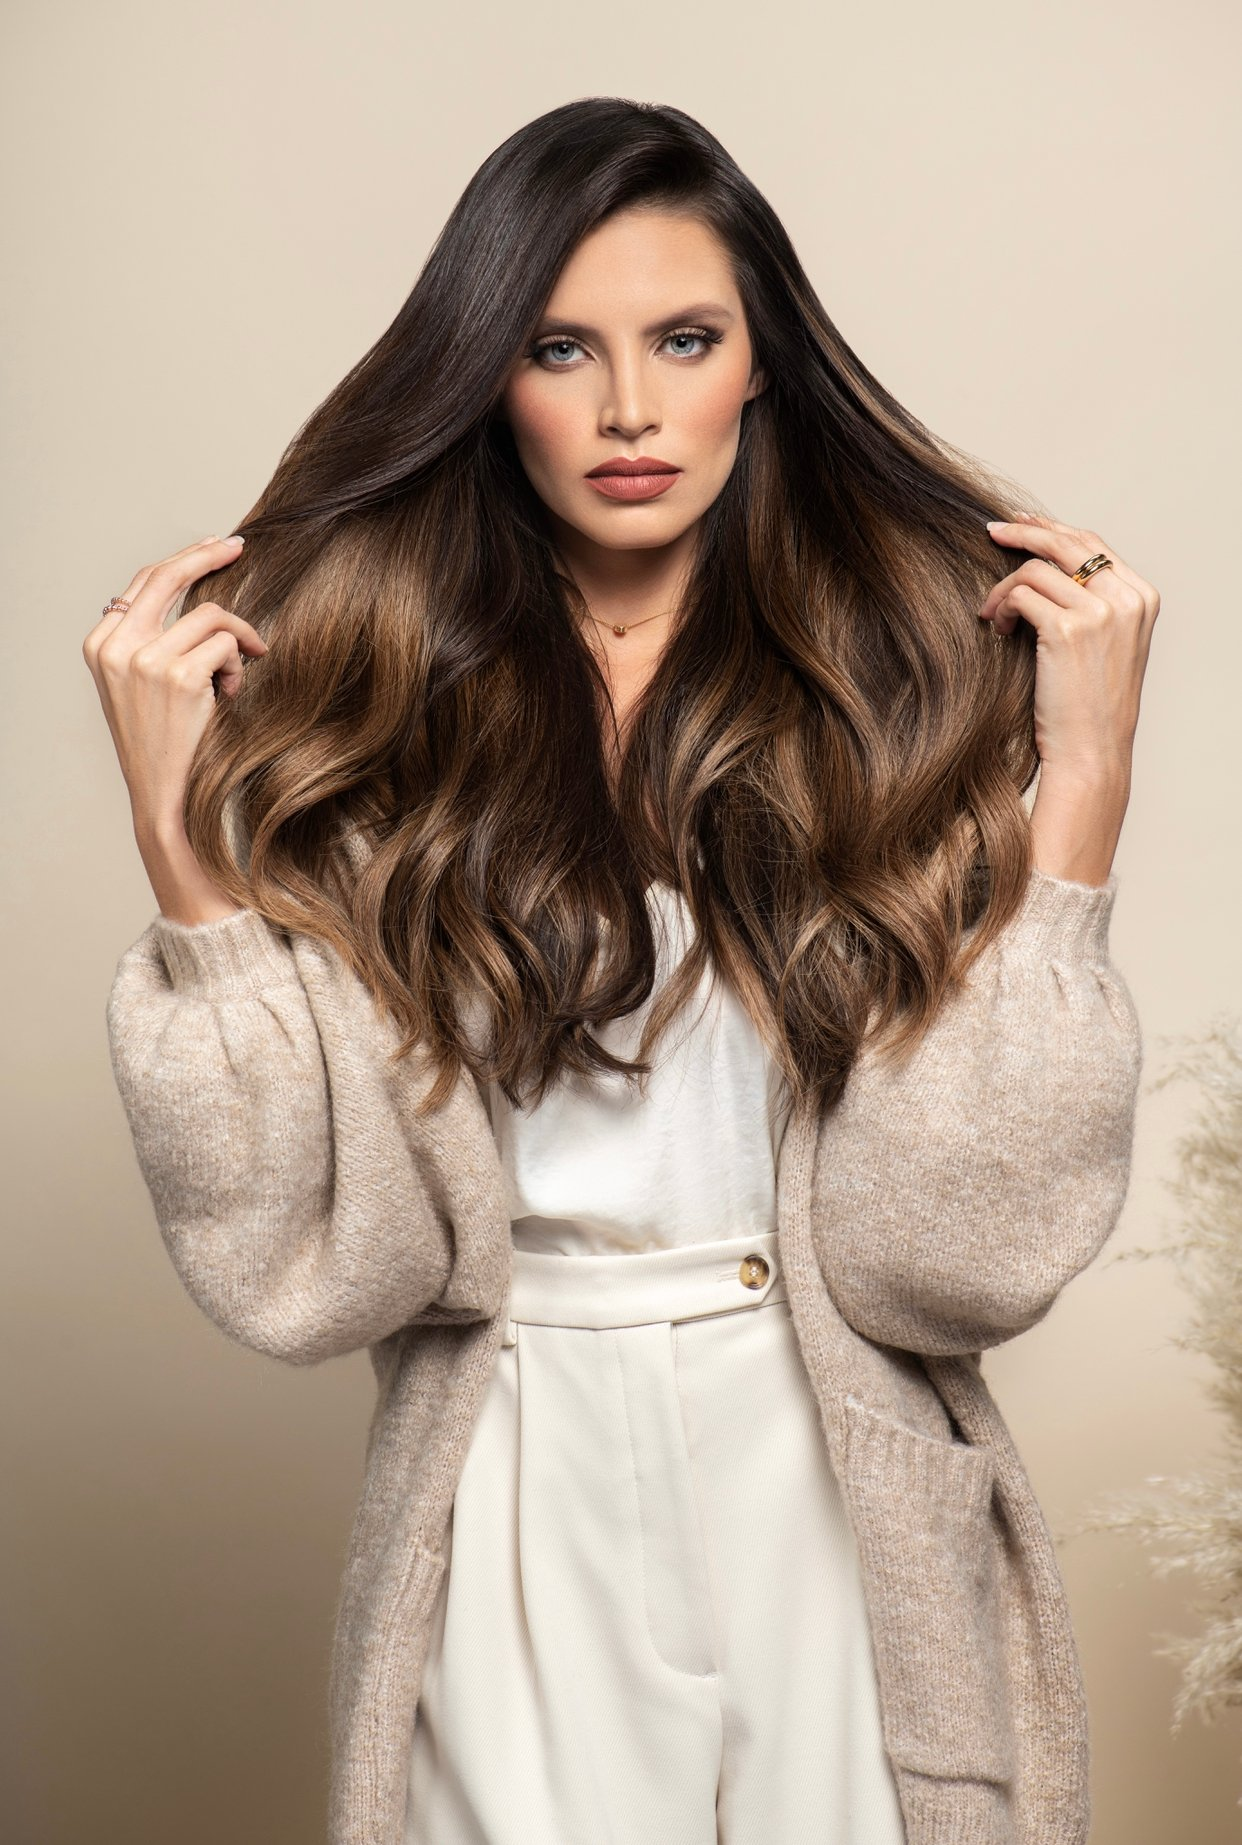 Keraflex Extensions from Hotheads: Matte Keratin Bonds for Discreet Strand-By-Strand Application